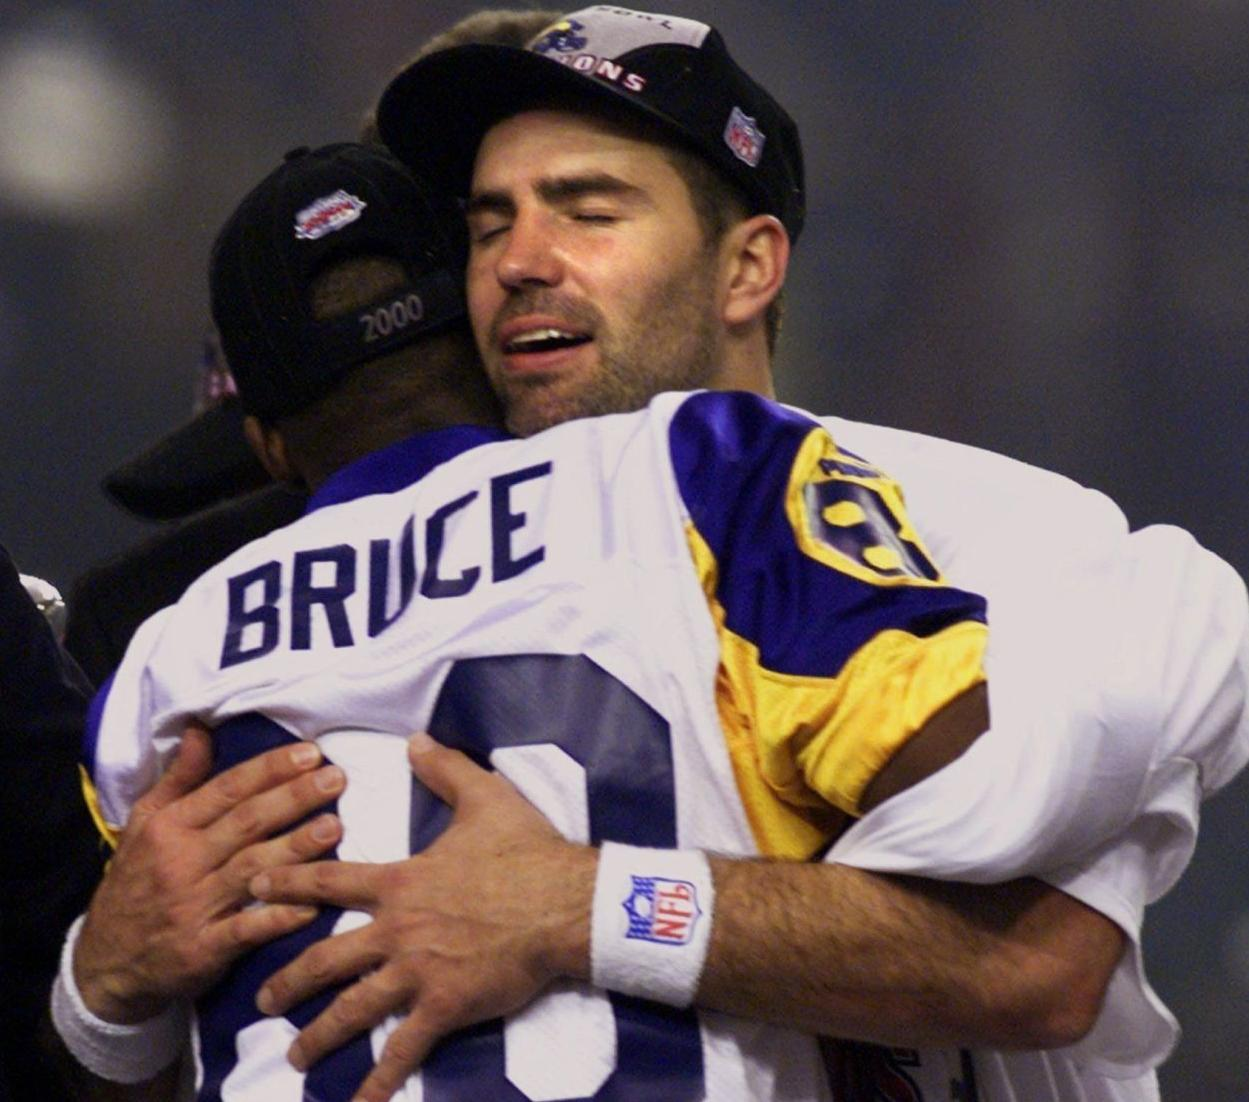 Isaac Bruce Organizes 'Legends of the Dome' Game